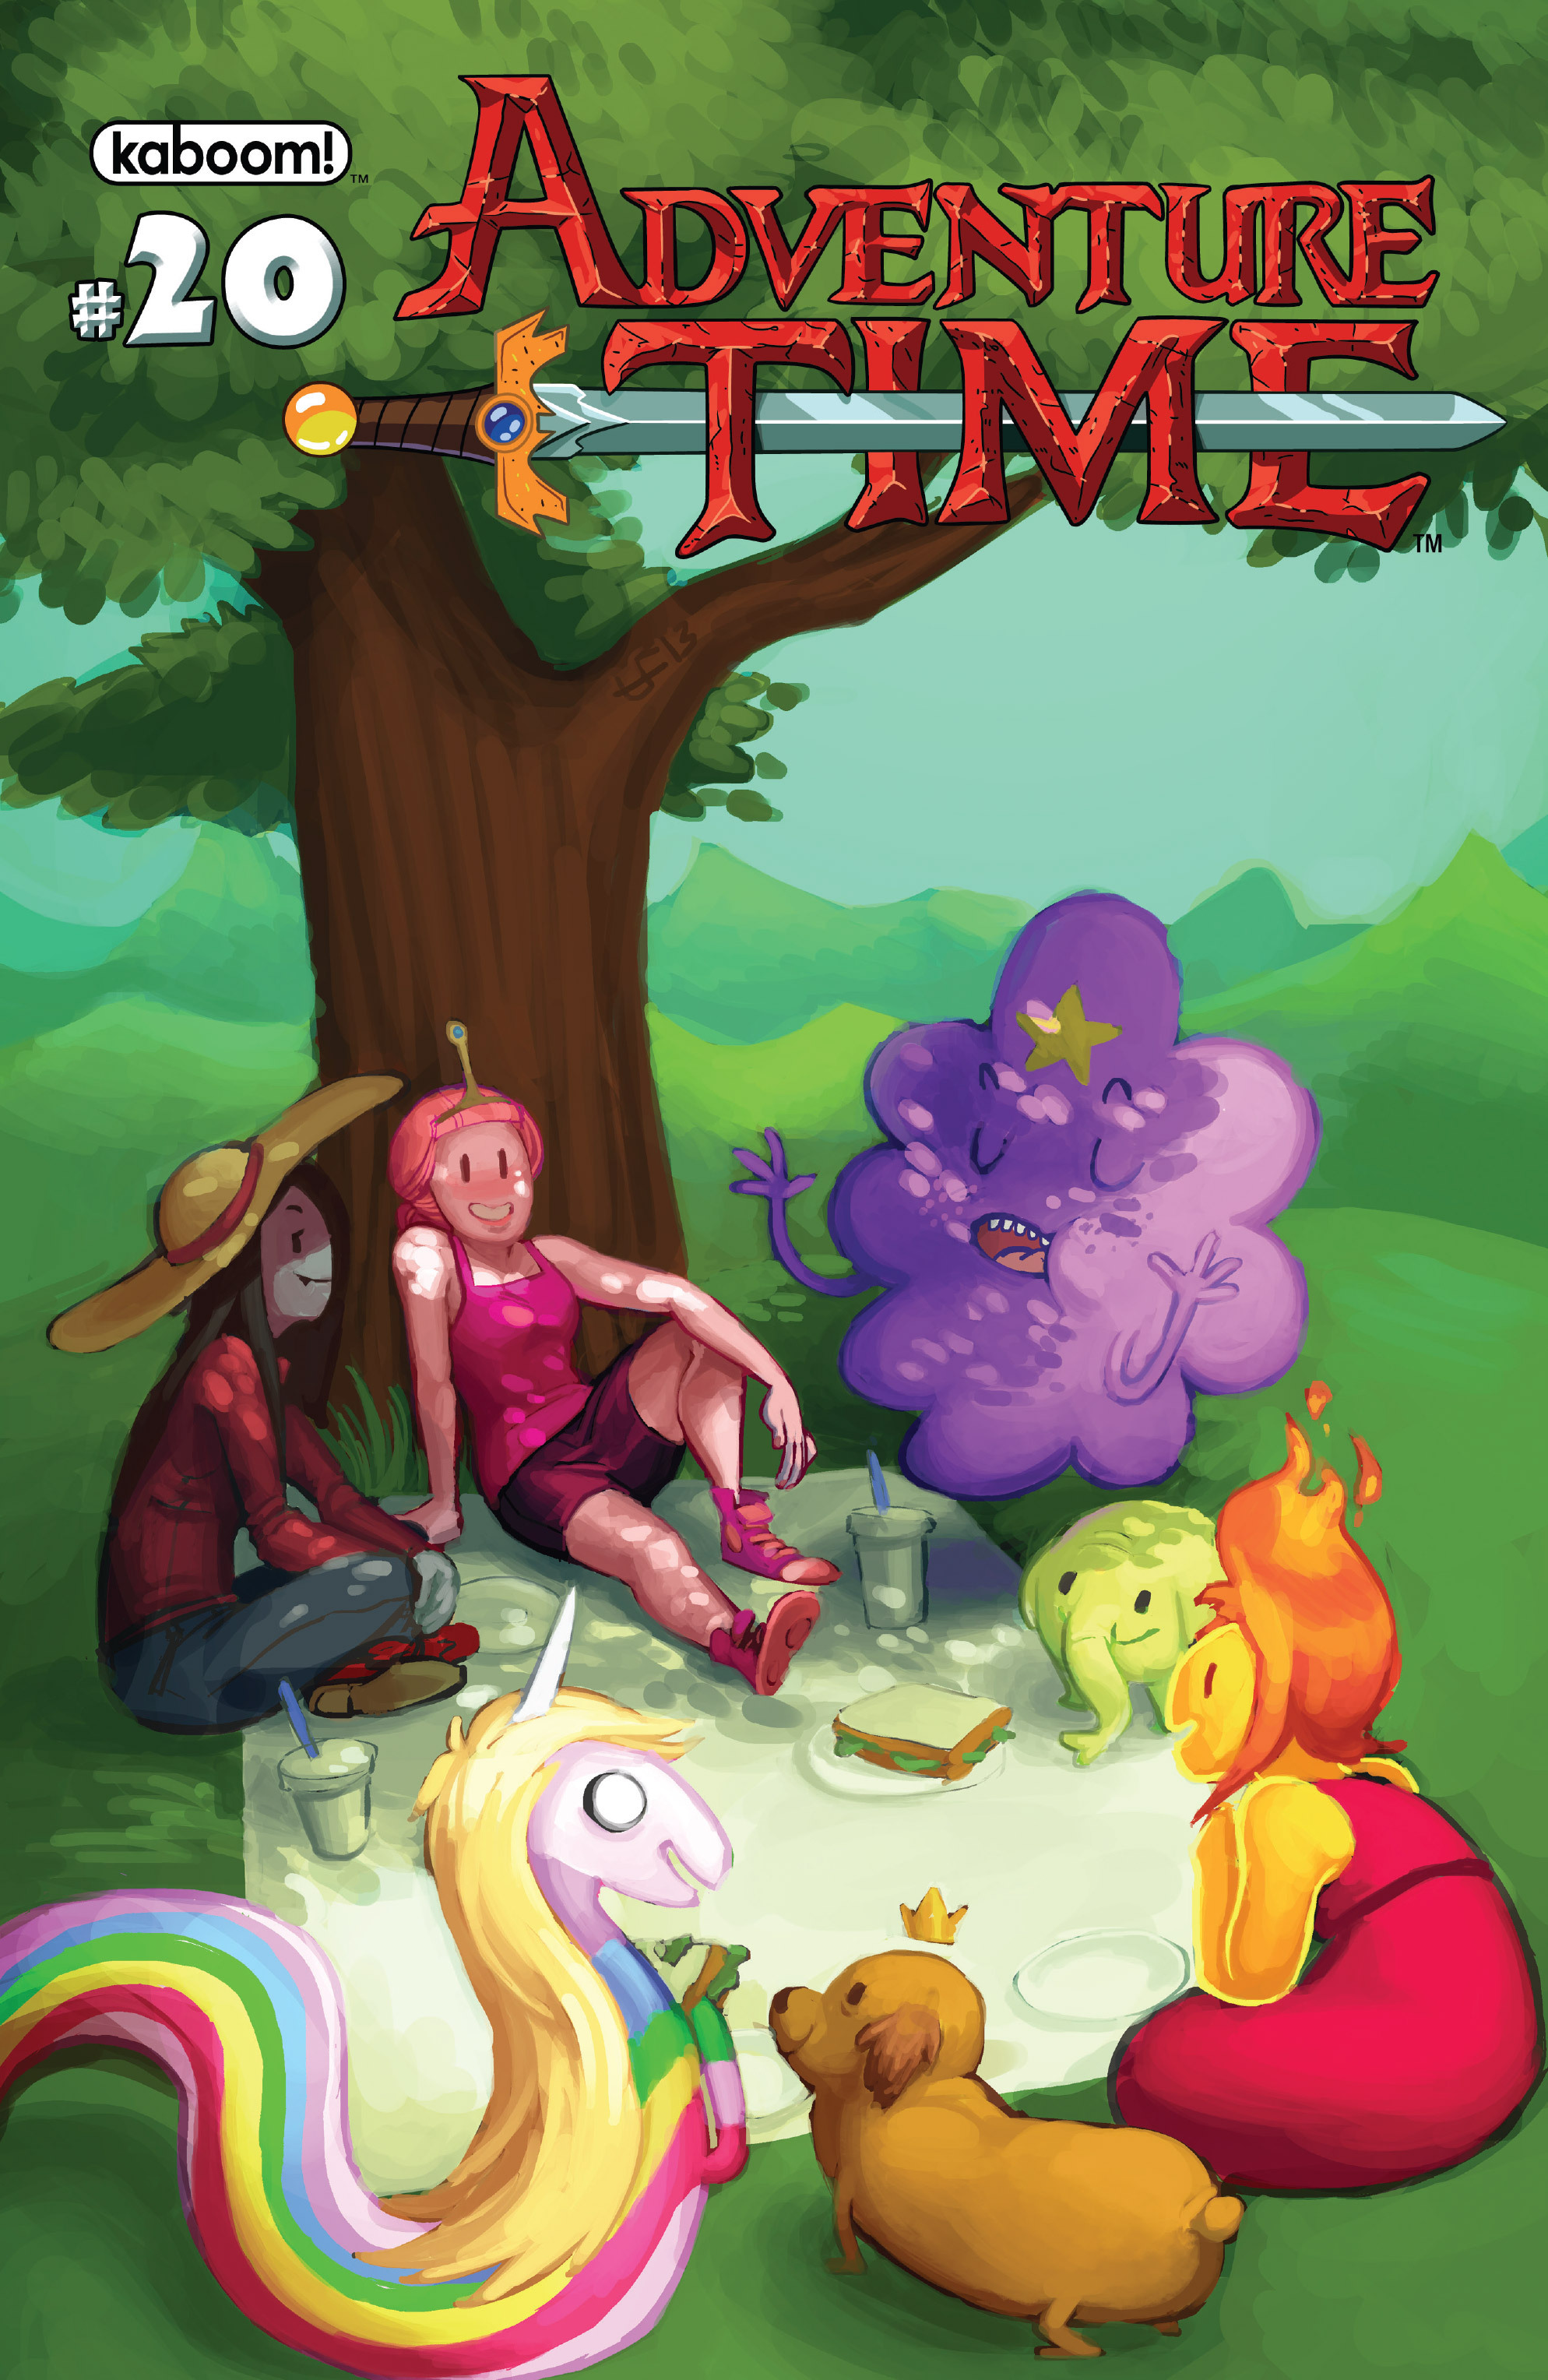 Read online Adventure Time comic -  Issue #20 - 2